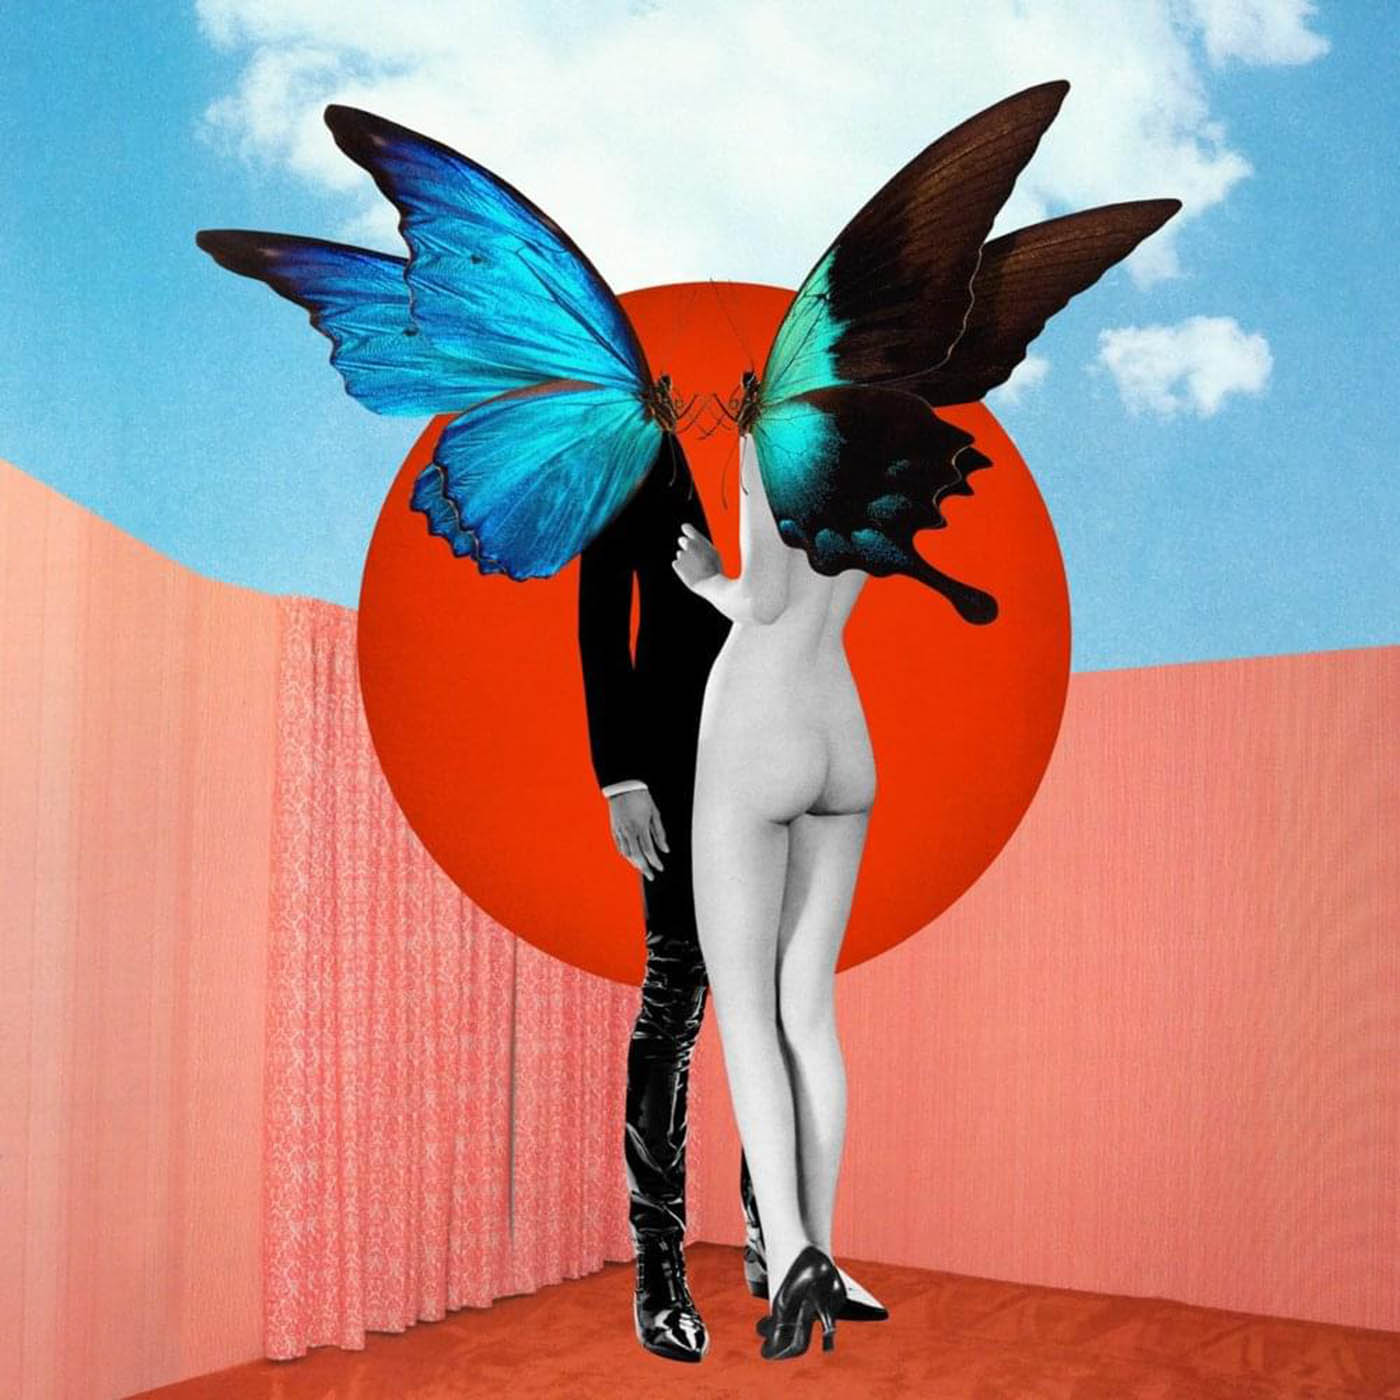 Clean Bandit - Baby (feat. Marina and The Diamonds & Luis Fonsi) - Ross Fortune - Engineer